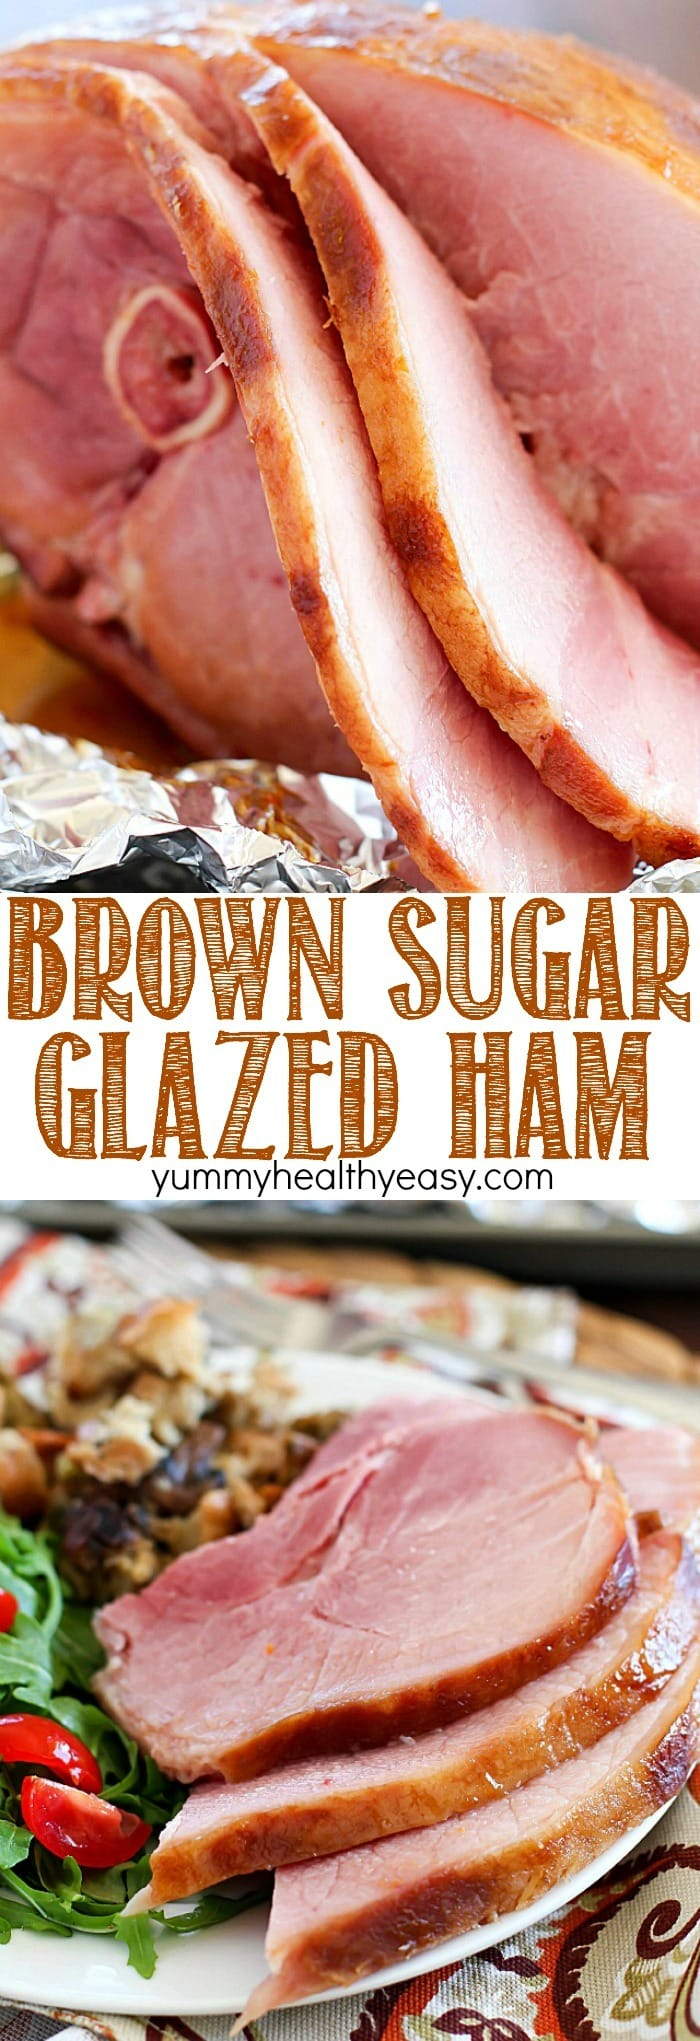 The juiciest, most tender Brown Sugar Glazed Ham ever and it's SO easy! Only a few simple ingredients to an incredible ham that will be a hit at your next holiday party!